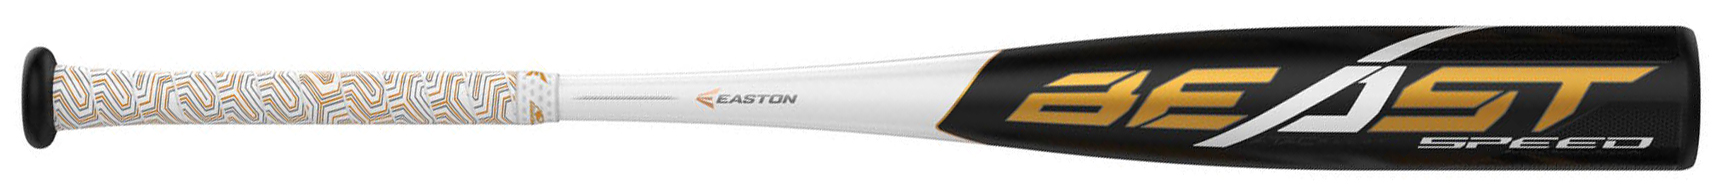 EASTON Beast Speed -10 (2 5/8) Youth Baseball Bat